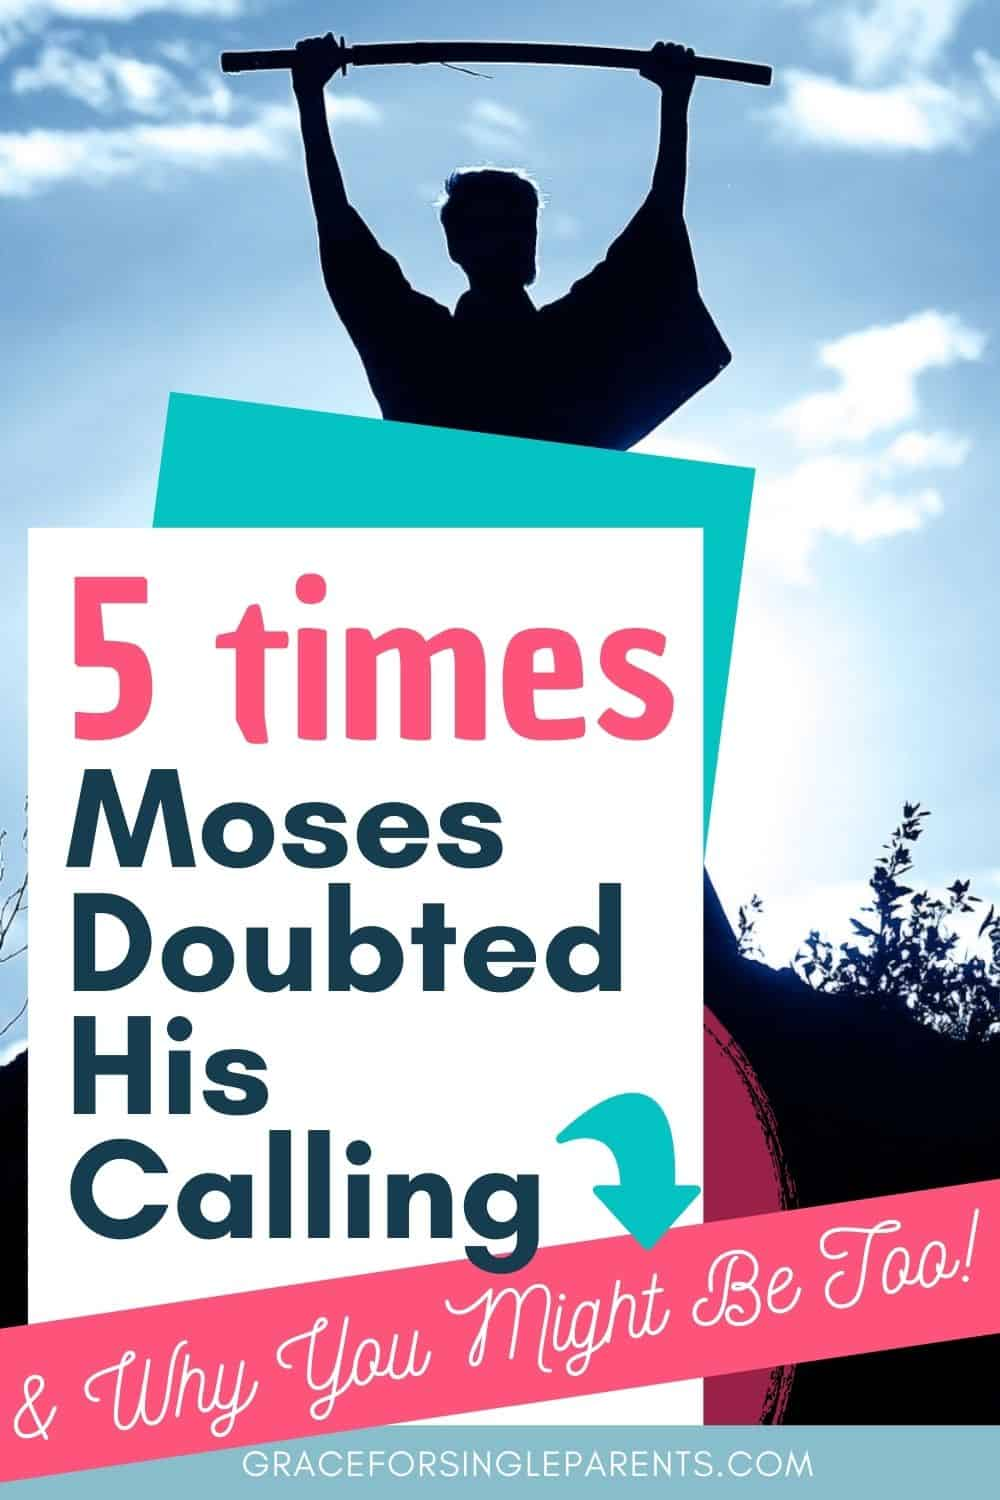 The 5 times Moses Questioned His Calling (and how You Might Be Too!)